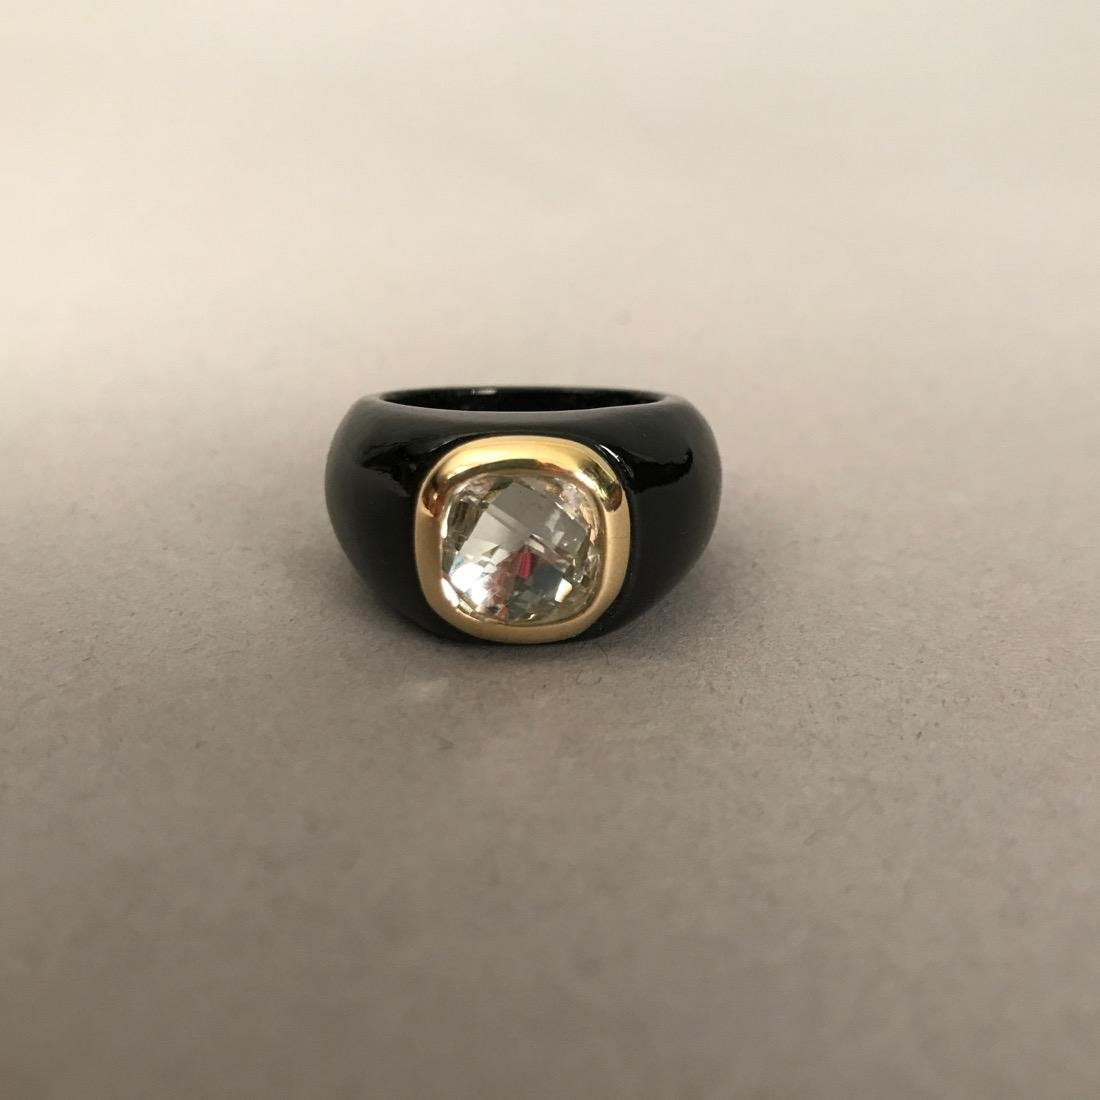 Carved Onyx Ring w Prasiolite in 14K Gold Bezel